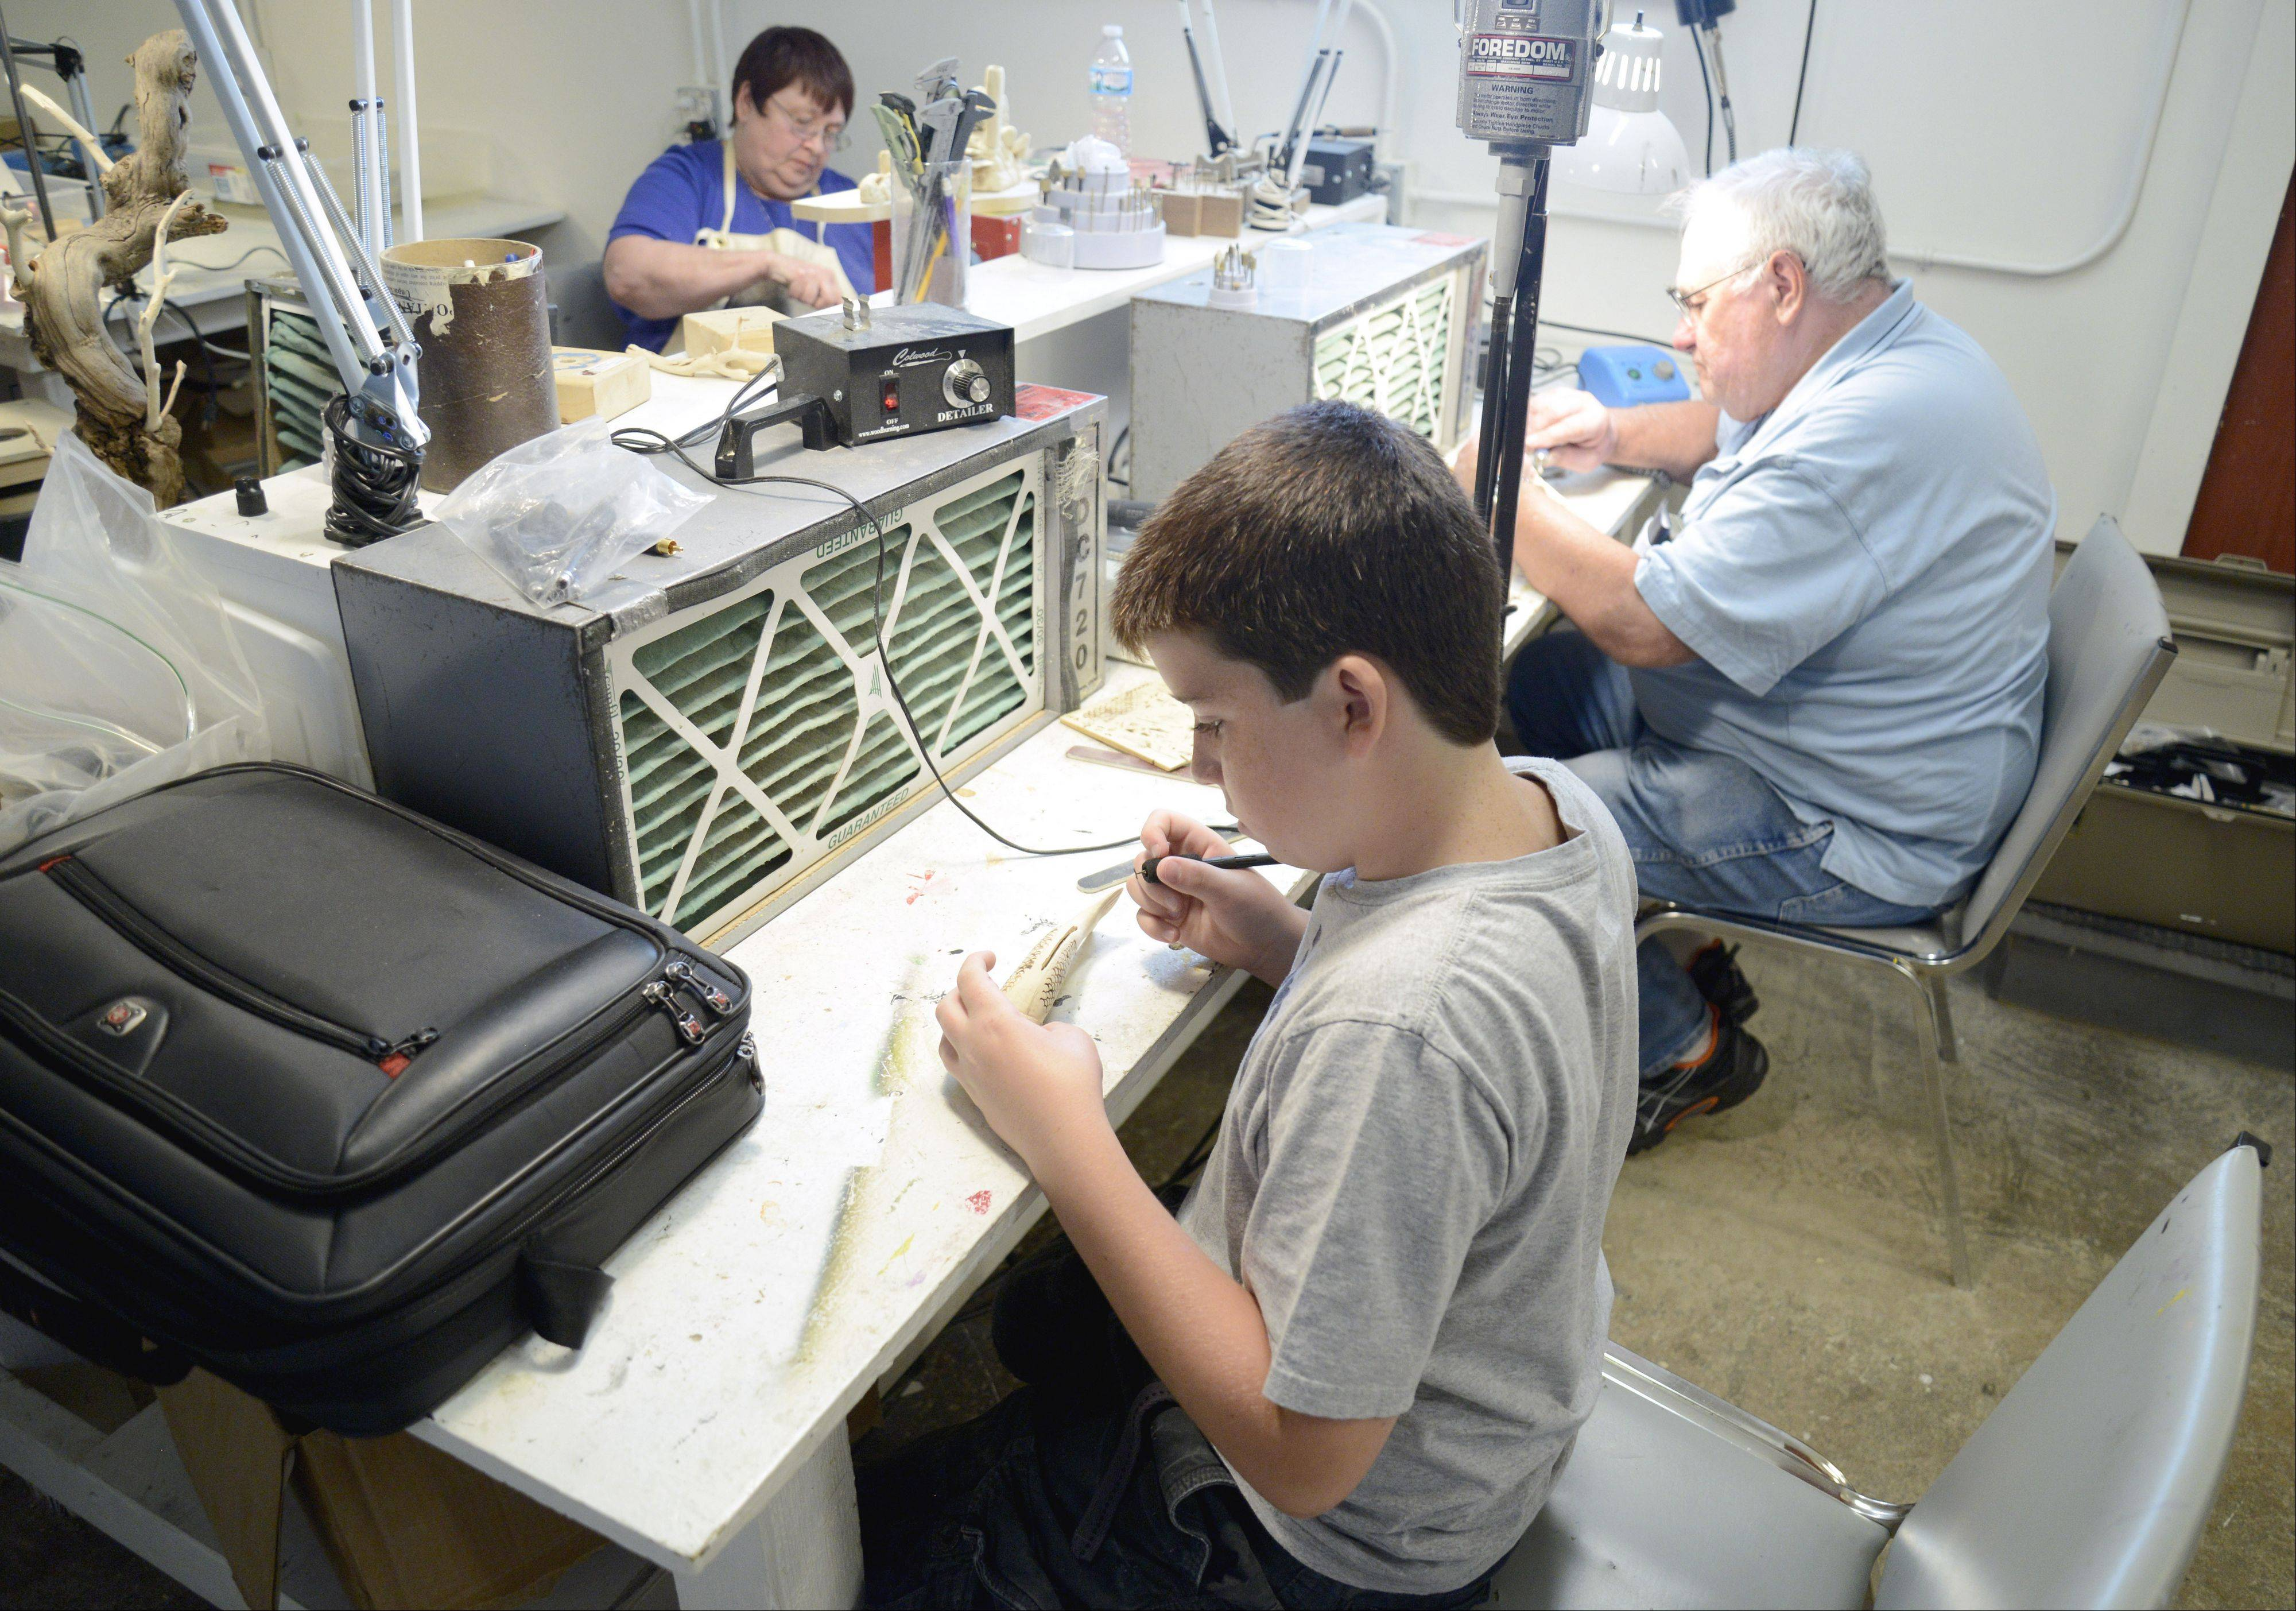 Shane Cloonan, 12, of Elgin works on a new carving of a smallmouth bass during class at the Guge Institute of Wildlife Art in Gilberts. Though he took up wood carving only about eight months ago, Shane already has established himself as one of the nation's best in his age group.